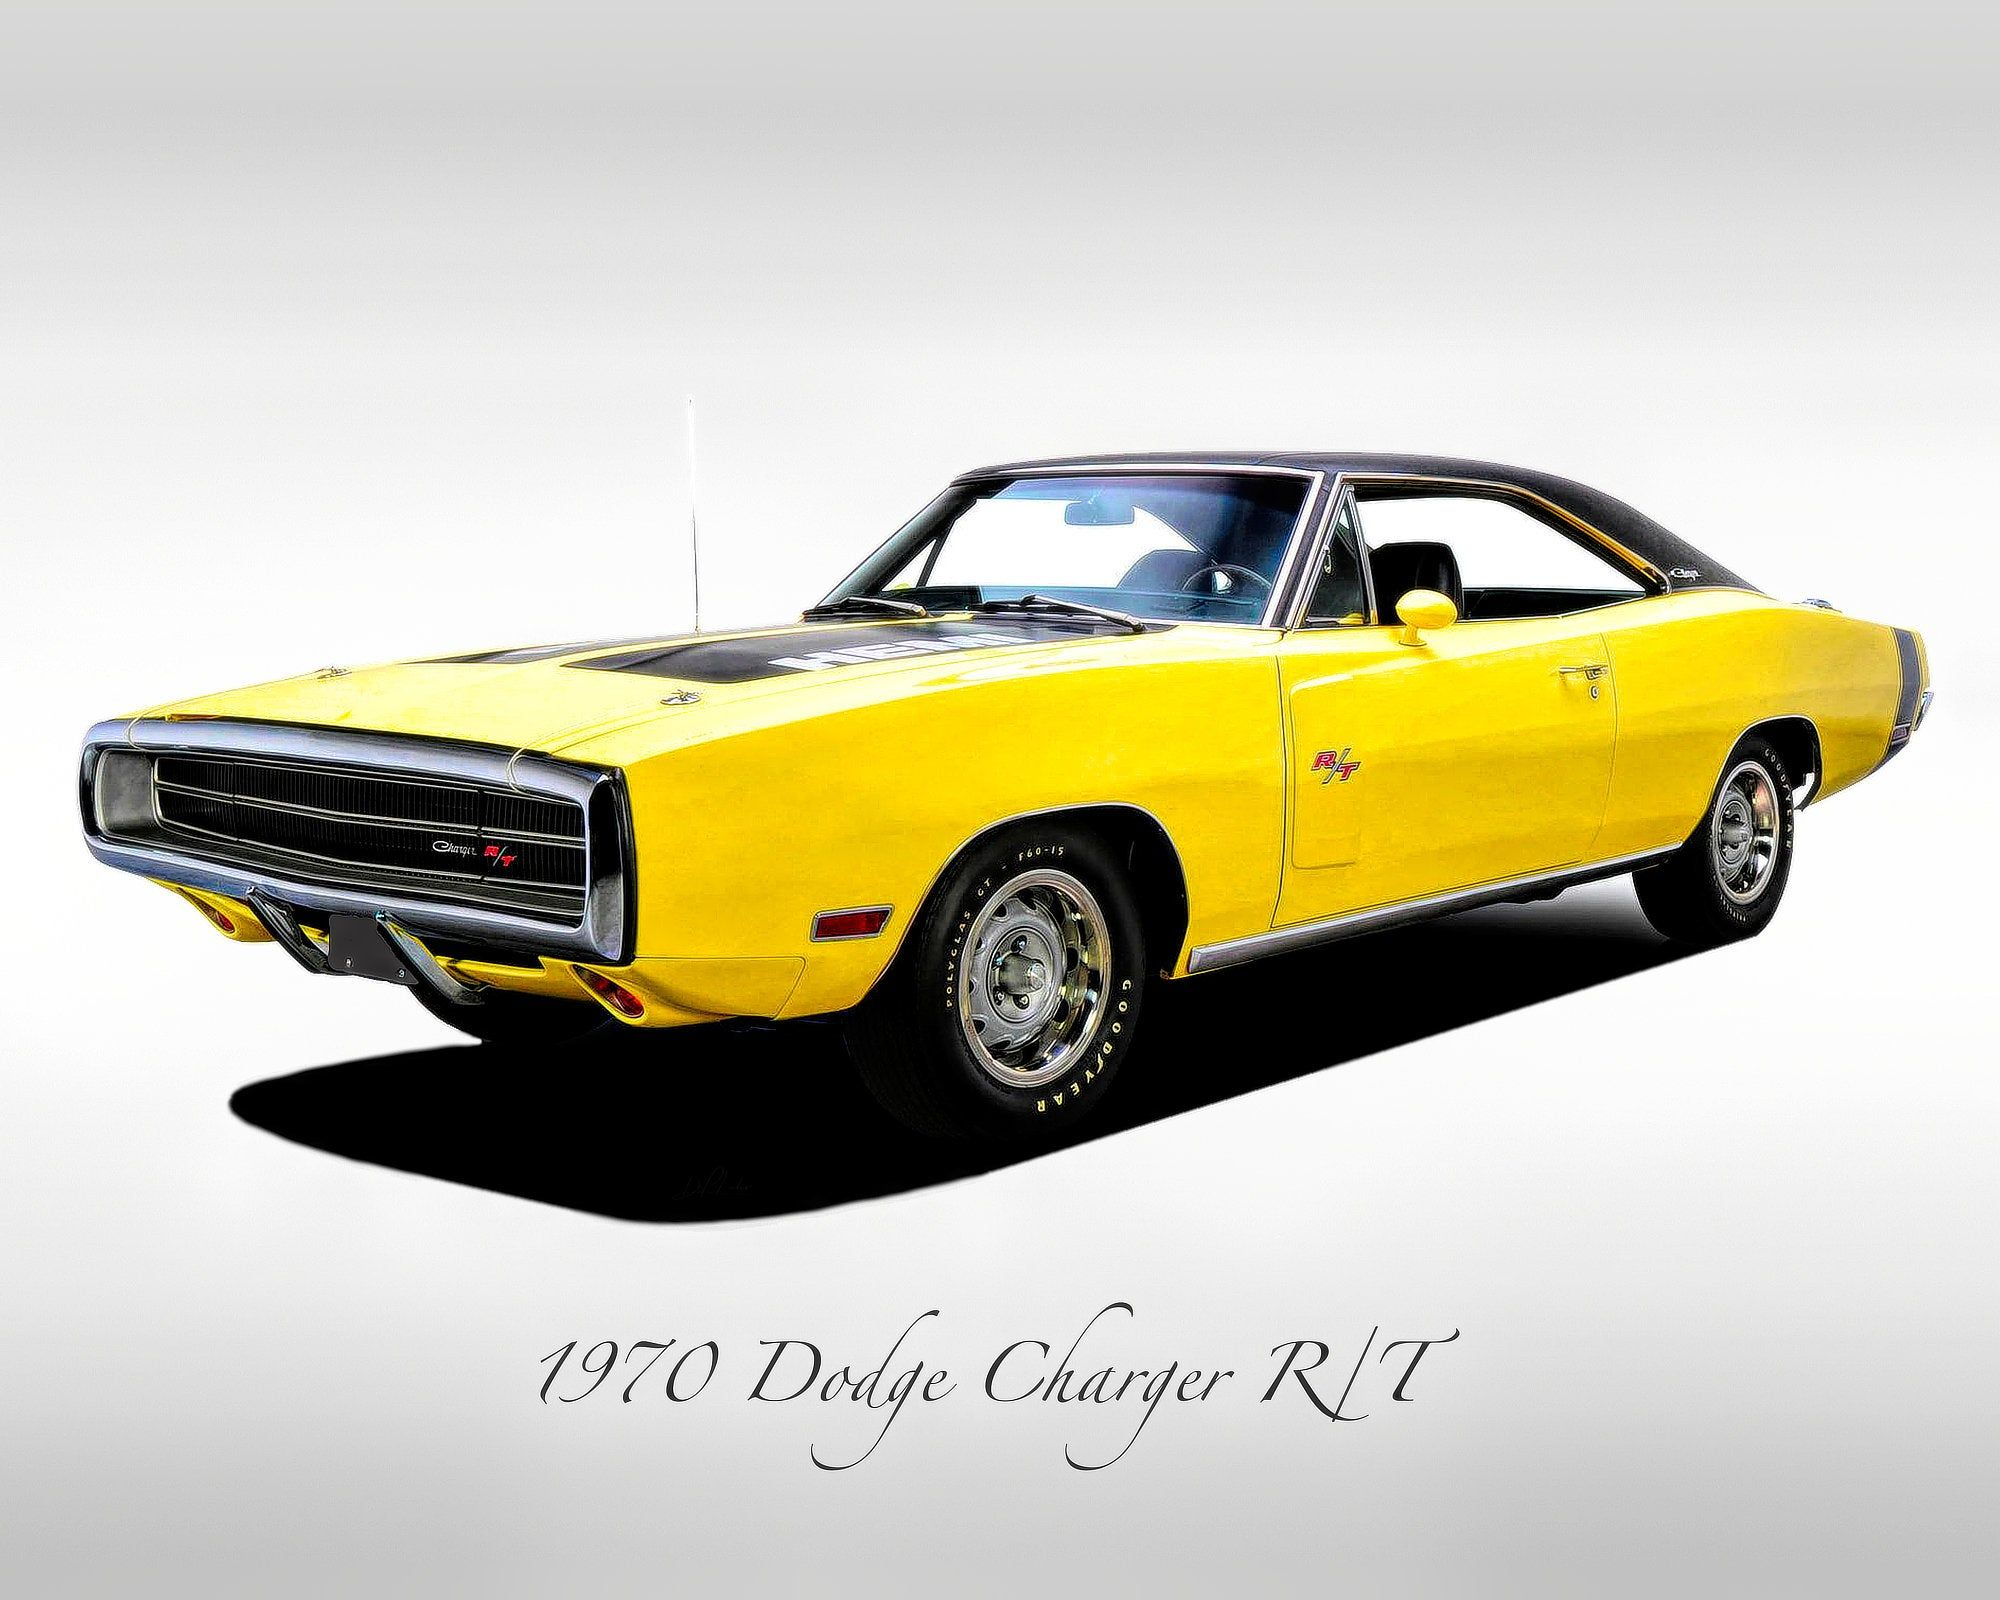 Classic Cars  1970 Dodge Charger R/T Yellow  Muscle Car  | Etsy